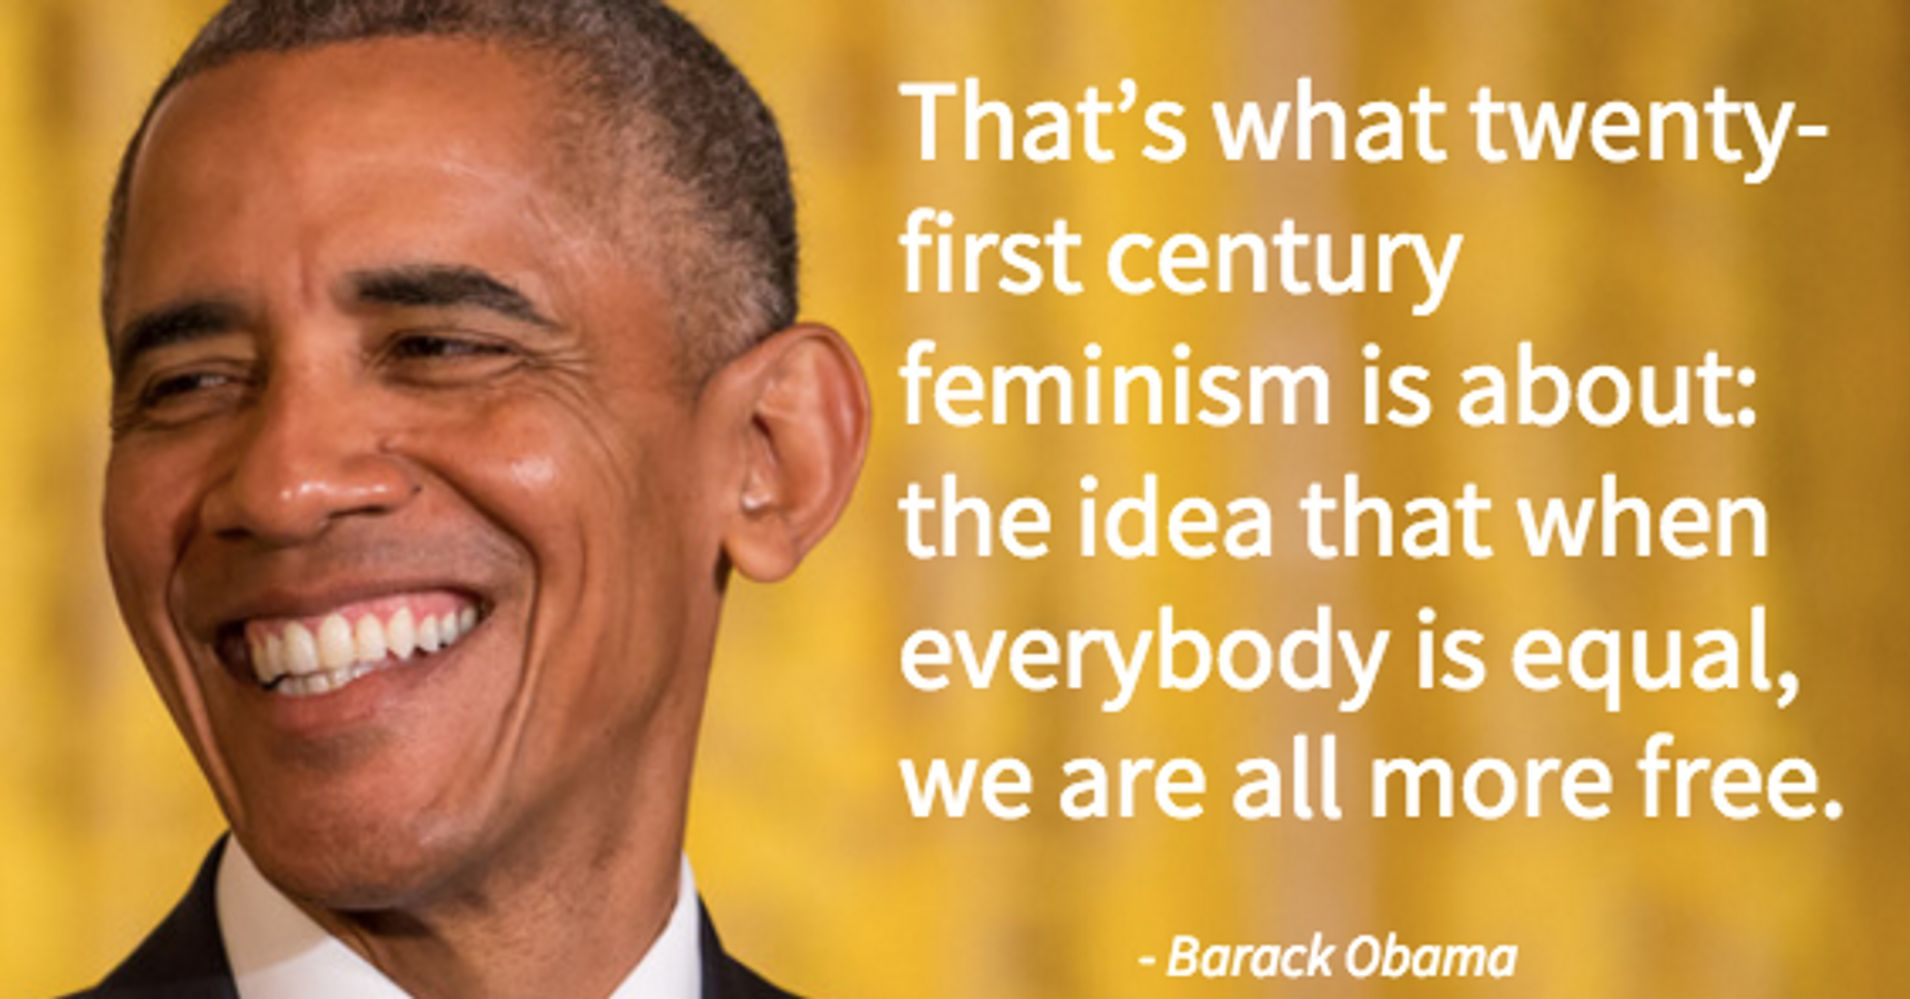 Health Essay Sample Barack Obama Wrote An Essay About Feminism Every Man Needs To Read   Huffpost High School Essays also English Reflective Essay Example Barack Obama Wrote An Essay About Feminism Every Man Needs To Read  College Essay Paper